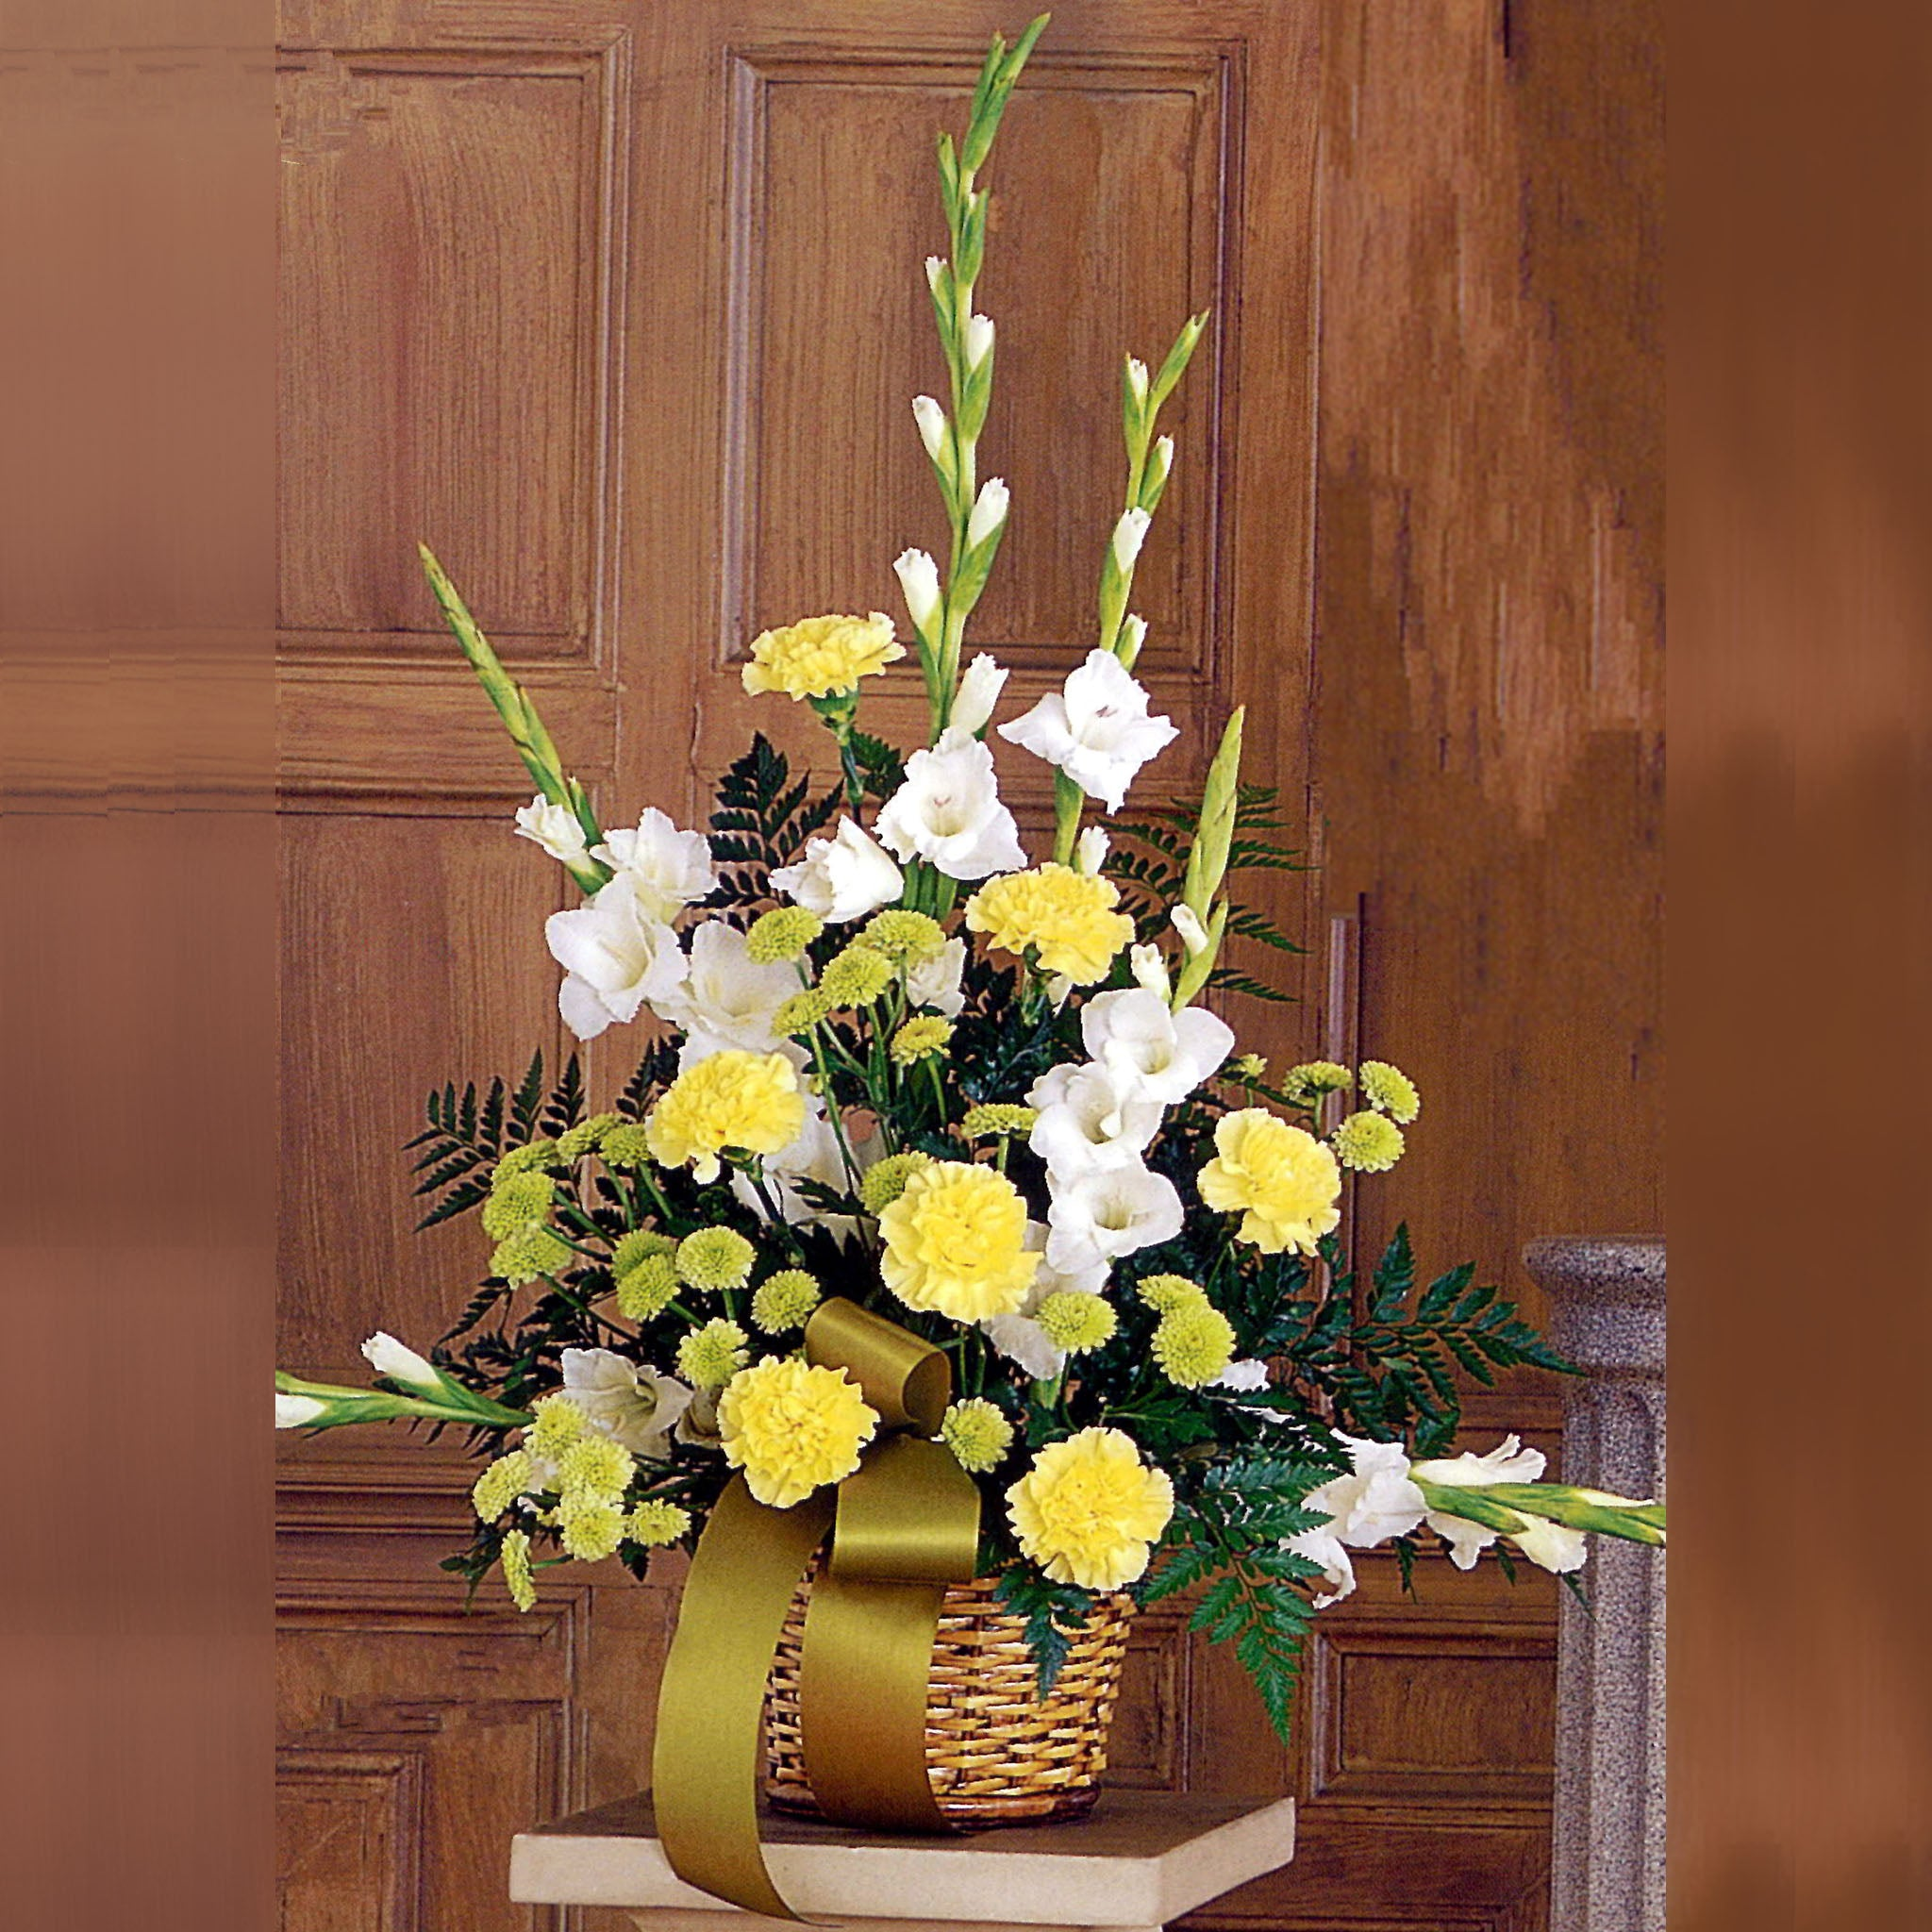 Vivid Yellow and White Funeral Floral Arrangement